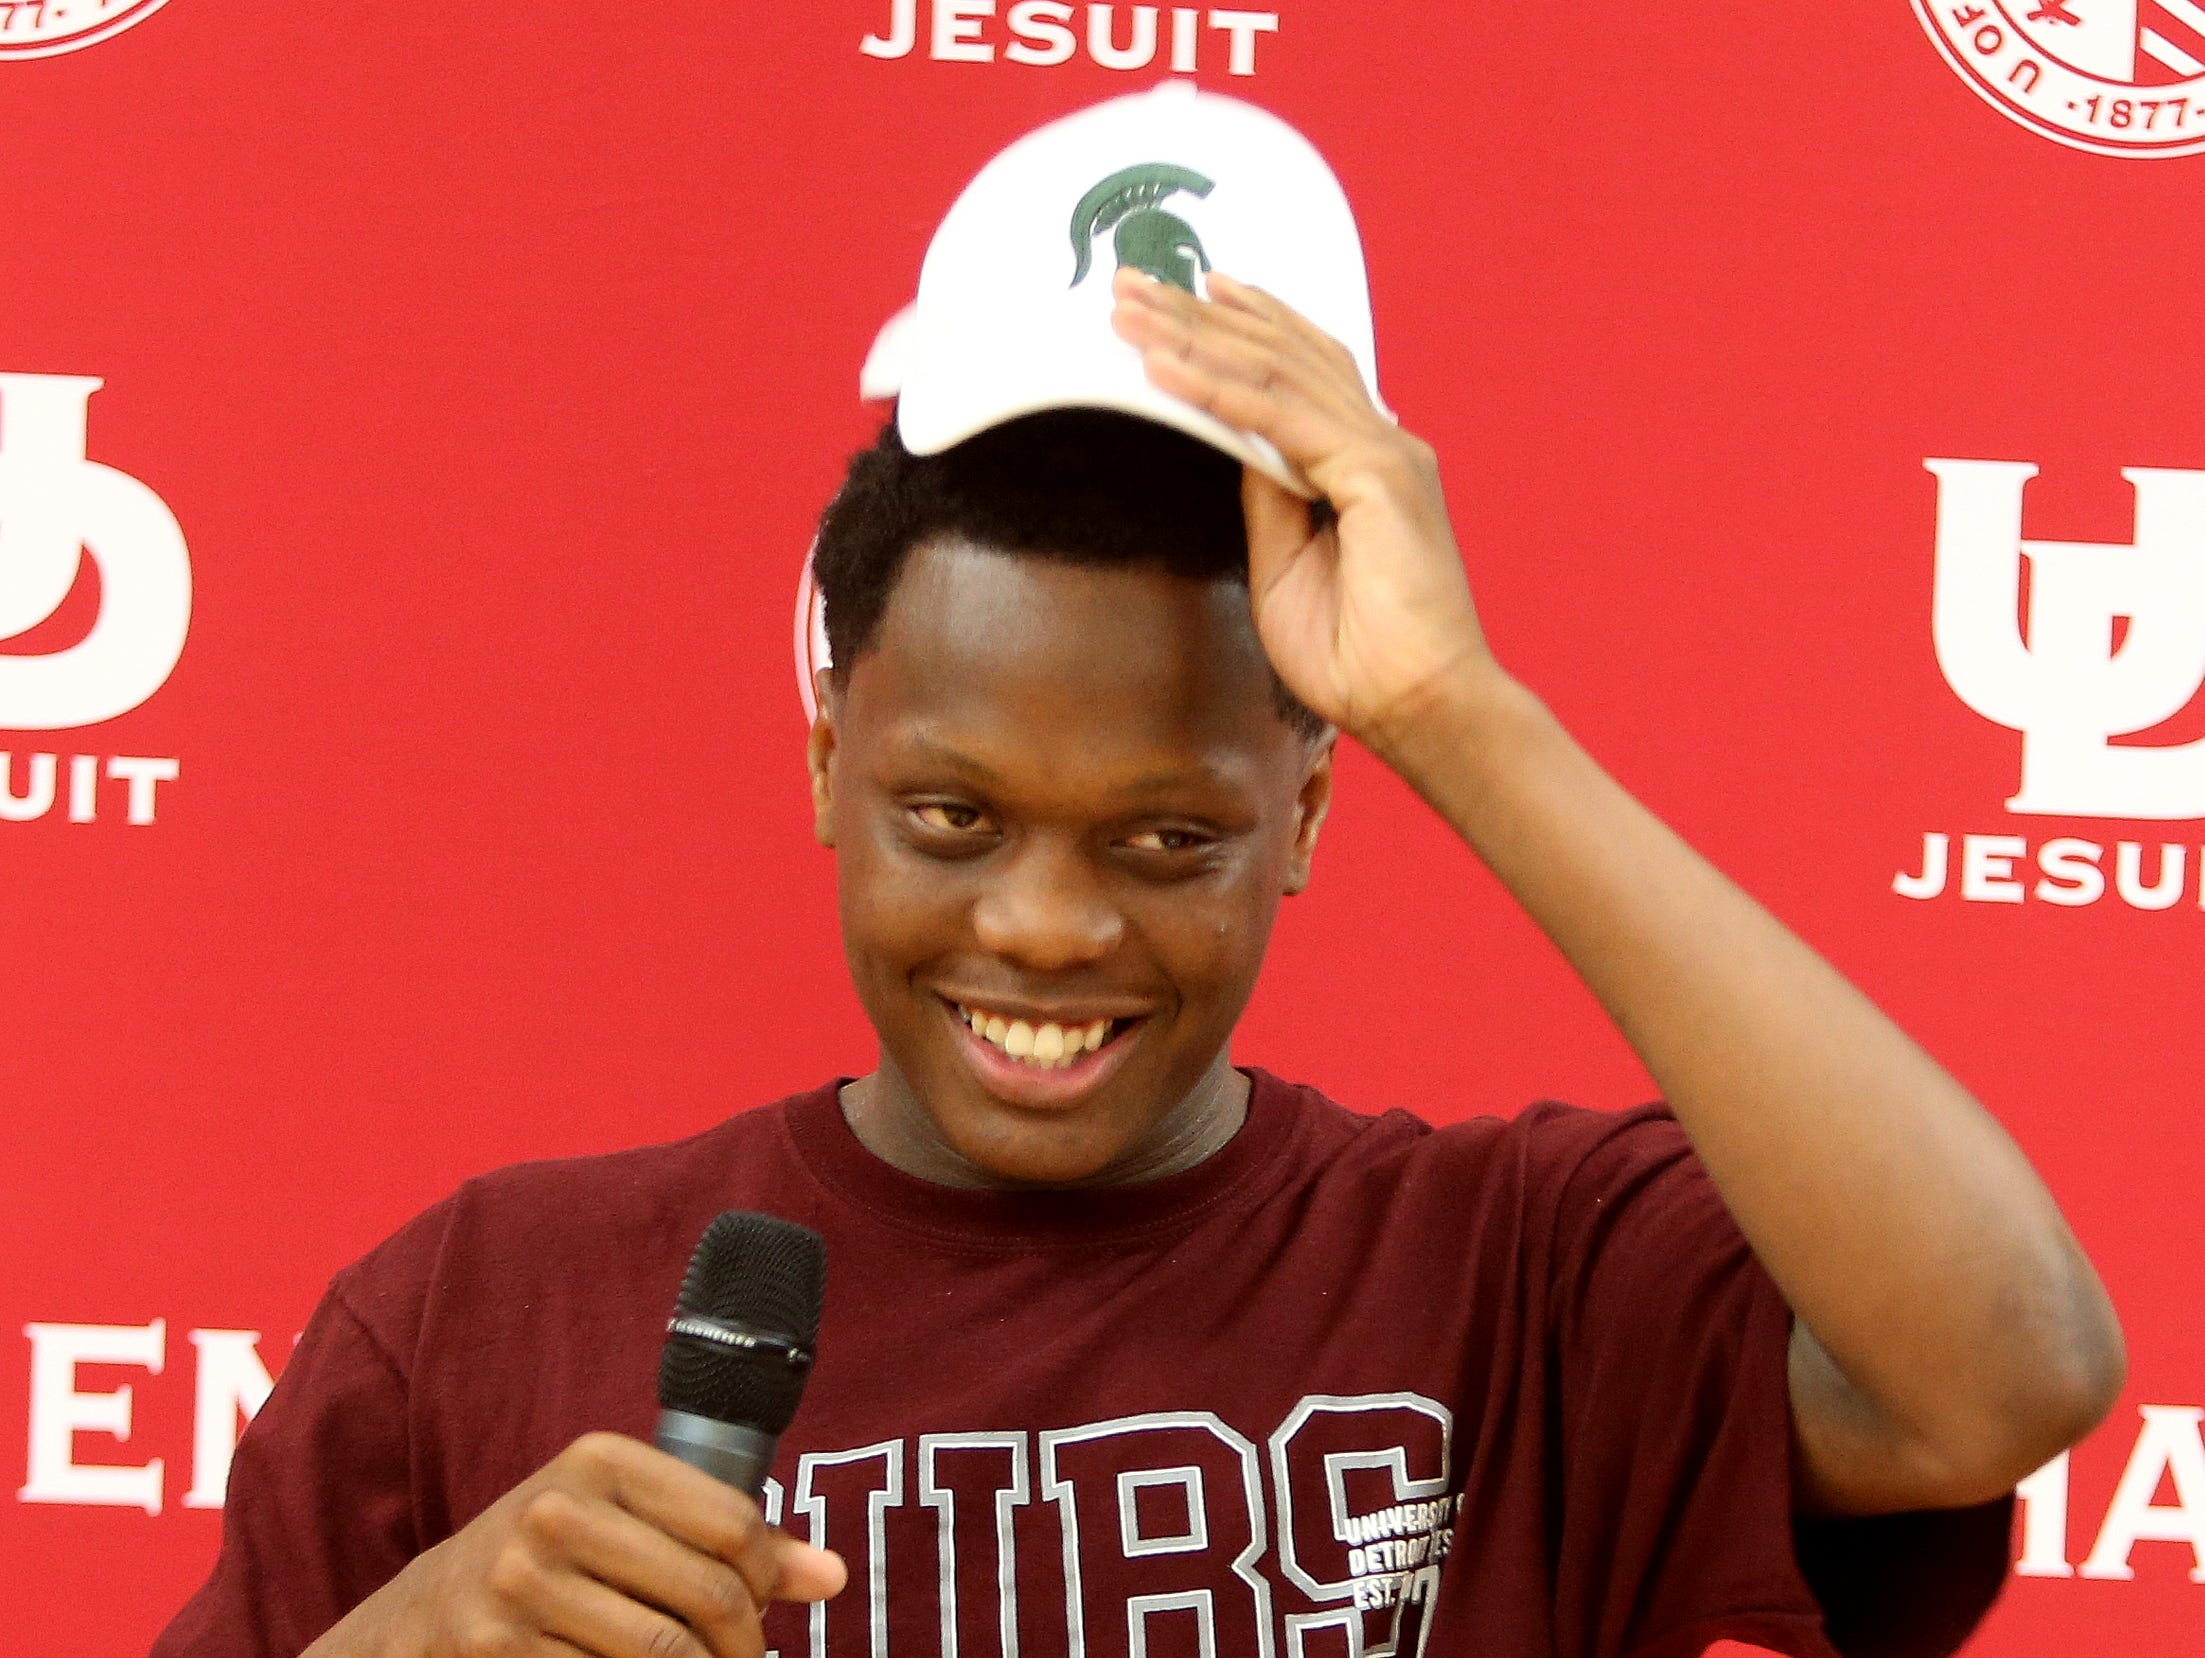 University of Detroit Jesuit senior and guard on the basketball team Cassius Winston announced he will be attending Michigan State University to play collegiate basketball on Friday, September18, 2015 at University of Detroit Jesuit high school in Detroit Michigan.